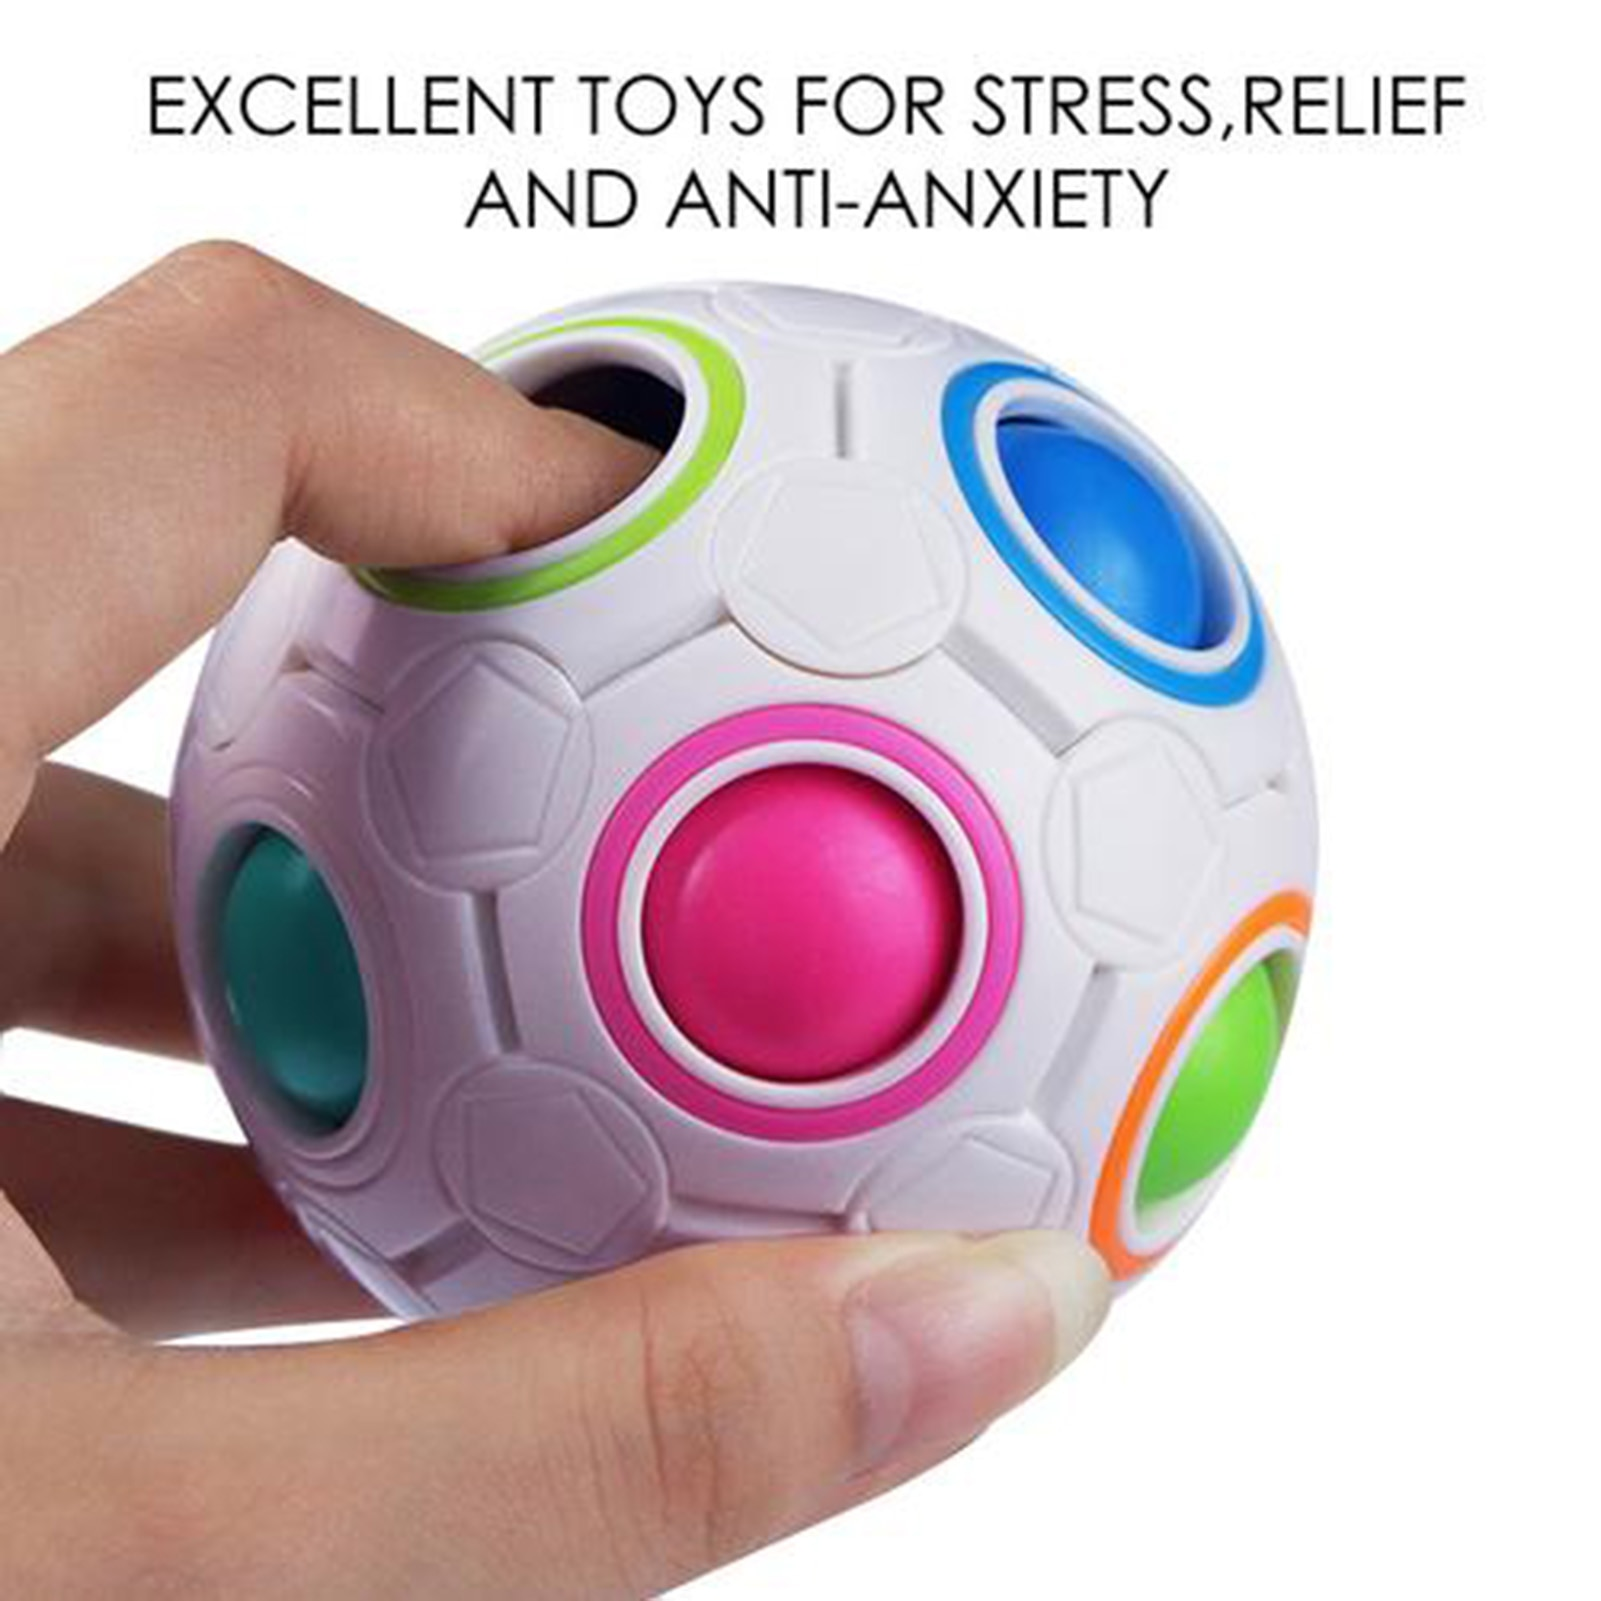 NEW Sensory Fidget Toys Pack Stress Relief Hand Toy for Kids Adults Calming queeze Bean Keychain Bubble Push Pop Mat 23 IN 1 Set enlarge